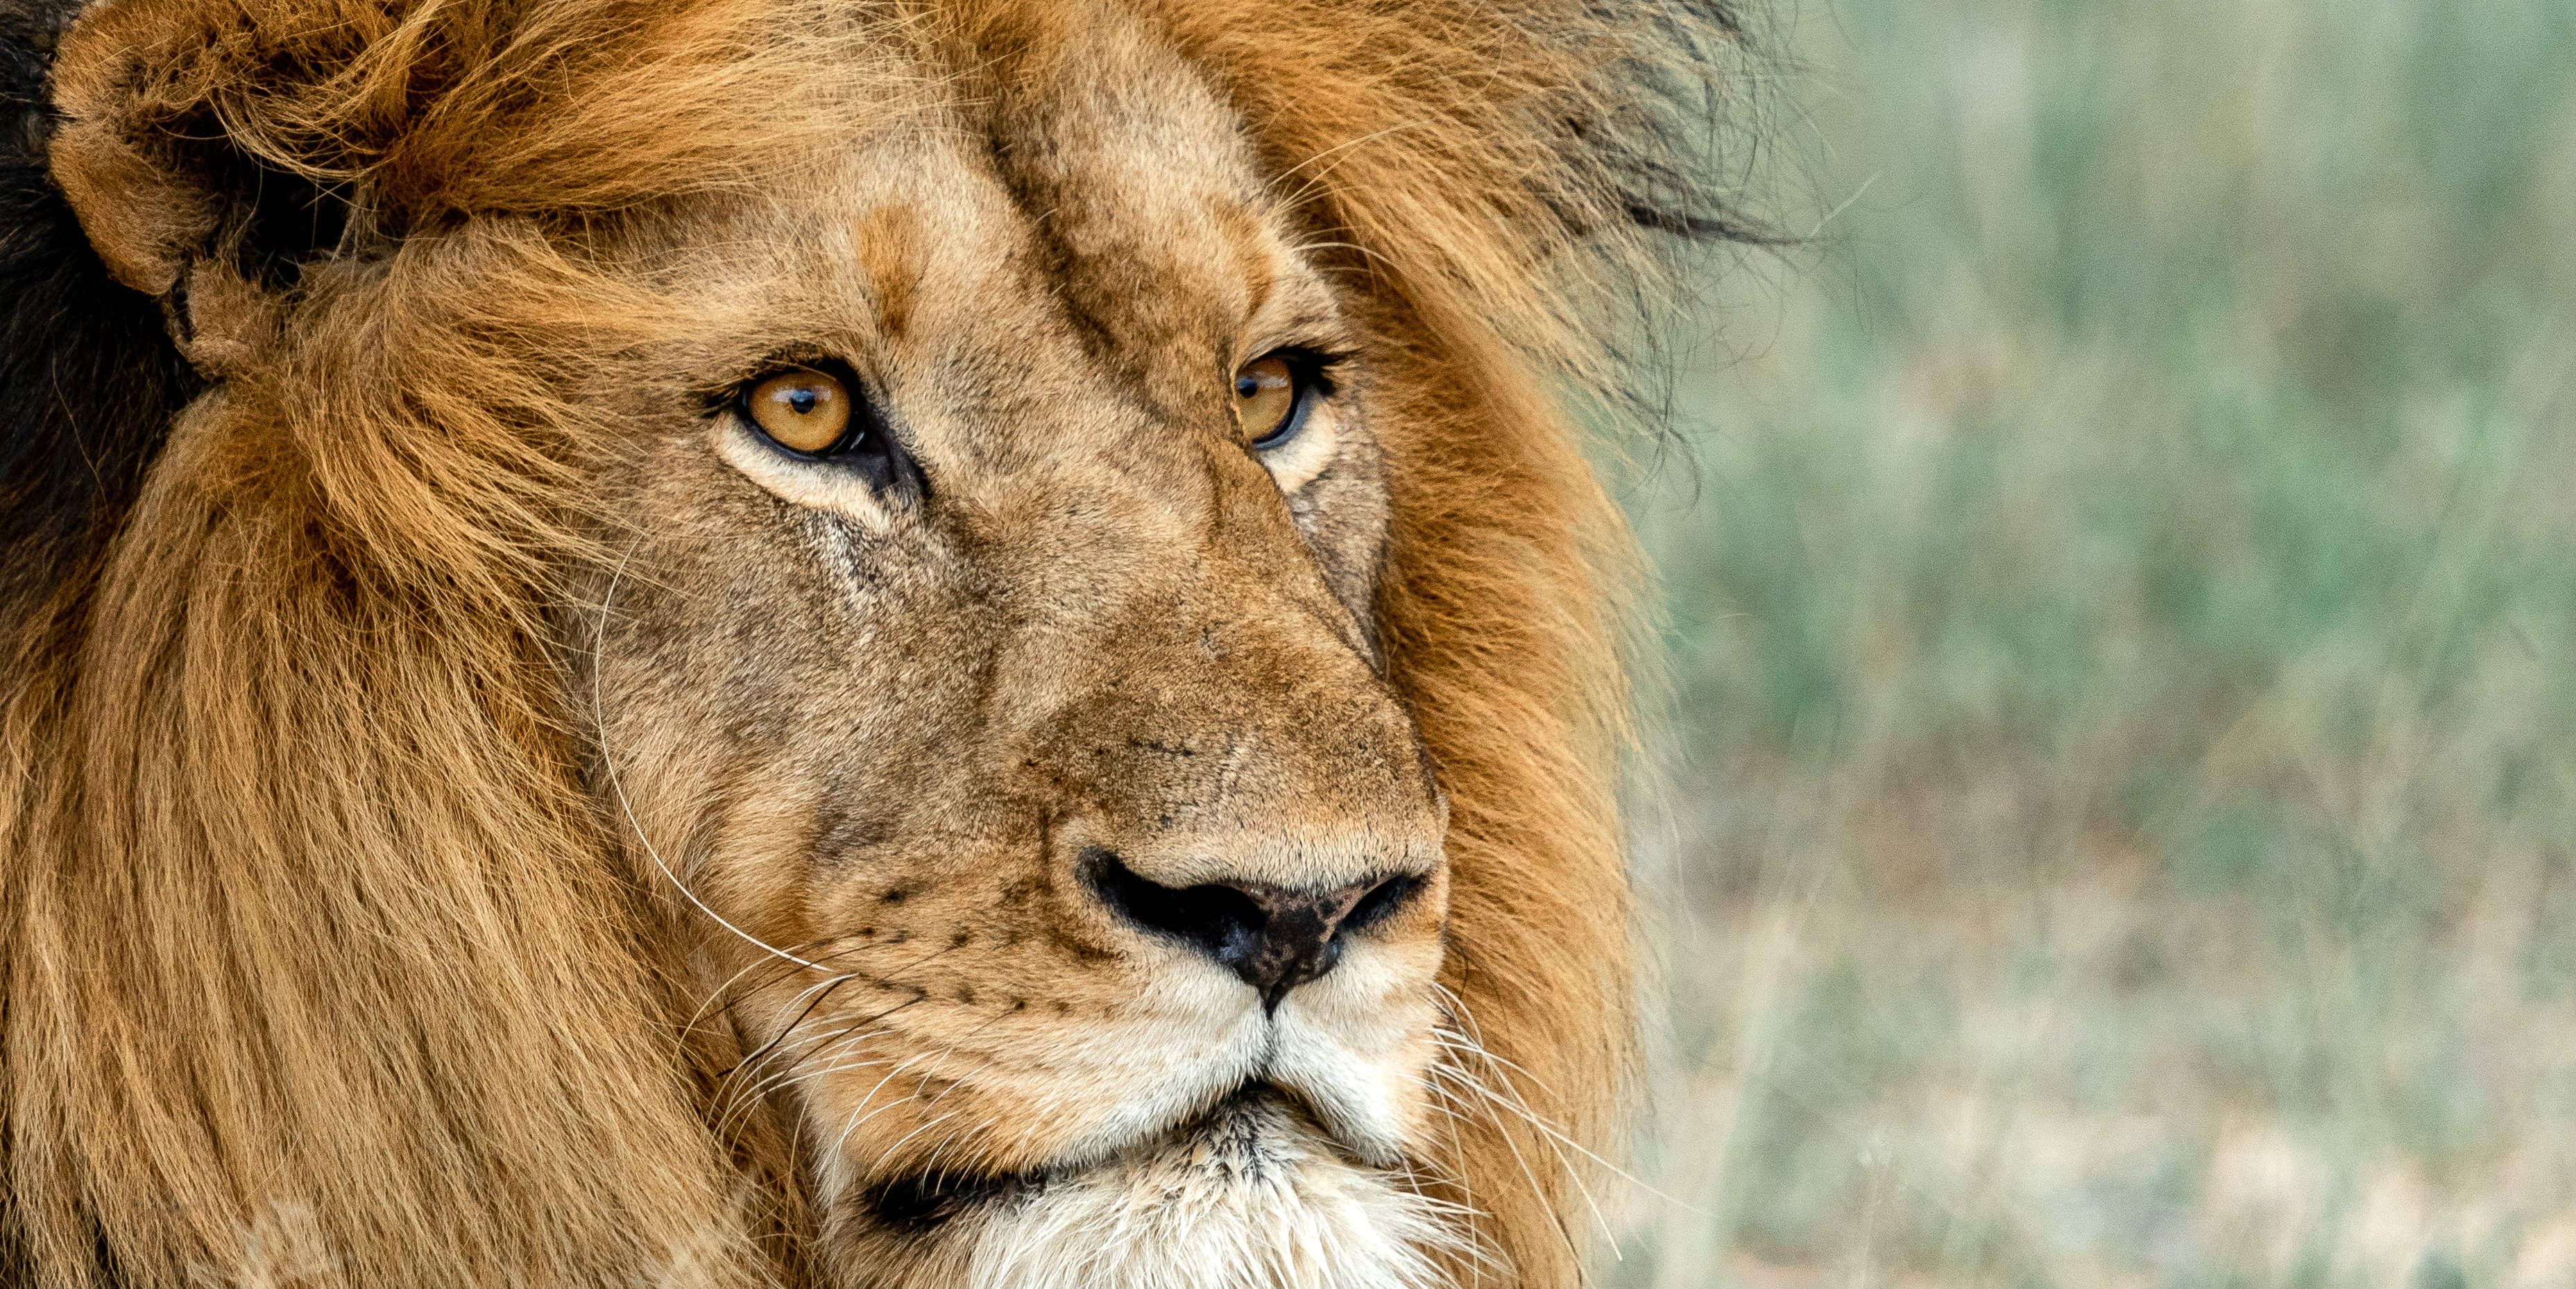 This close up image of a male lion was captured by a GVI participant while volunteering in Africa with animals.